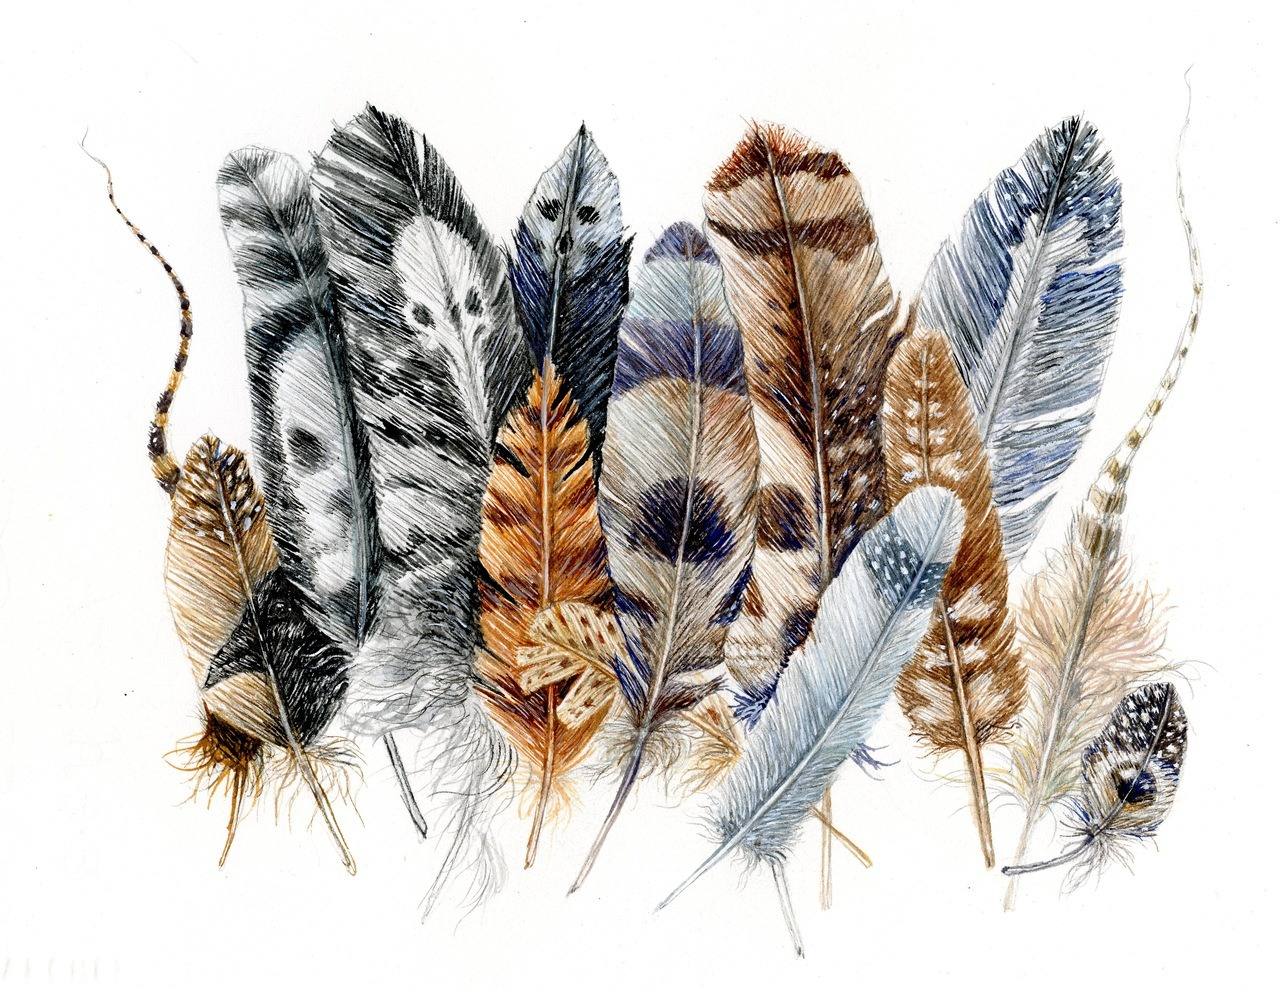 feather patterns, gouache, 2012 wendy wallin malinow inkhead